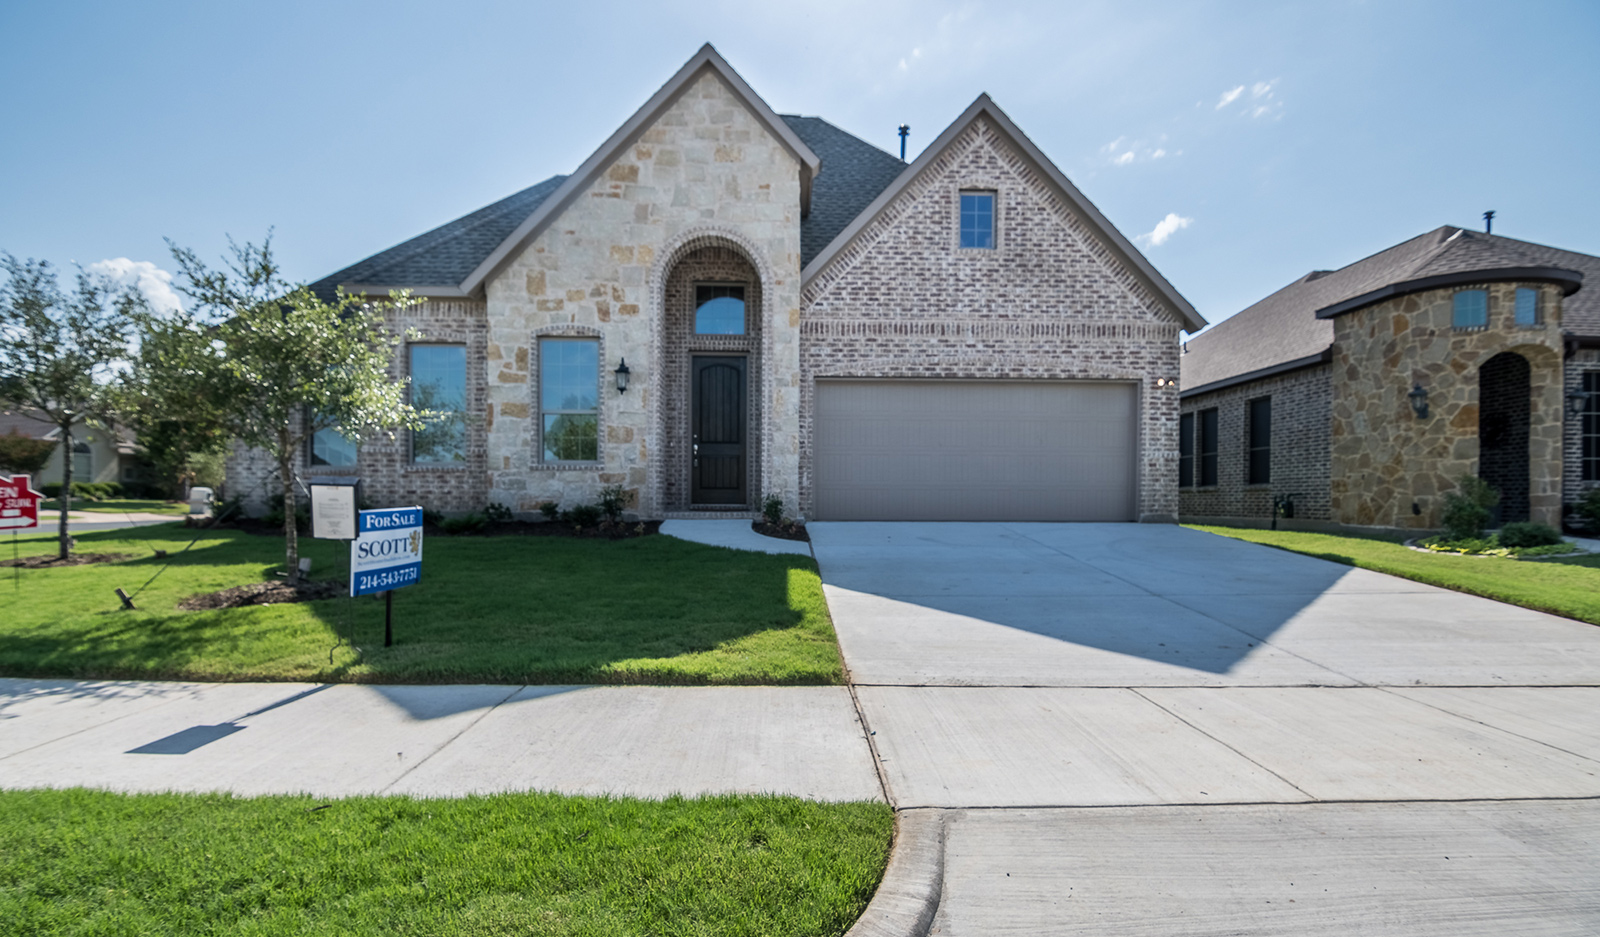 Available Homes, Property Sales - Dallas, Fort Worth